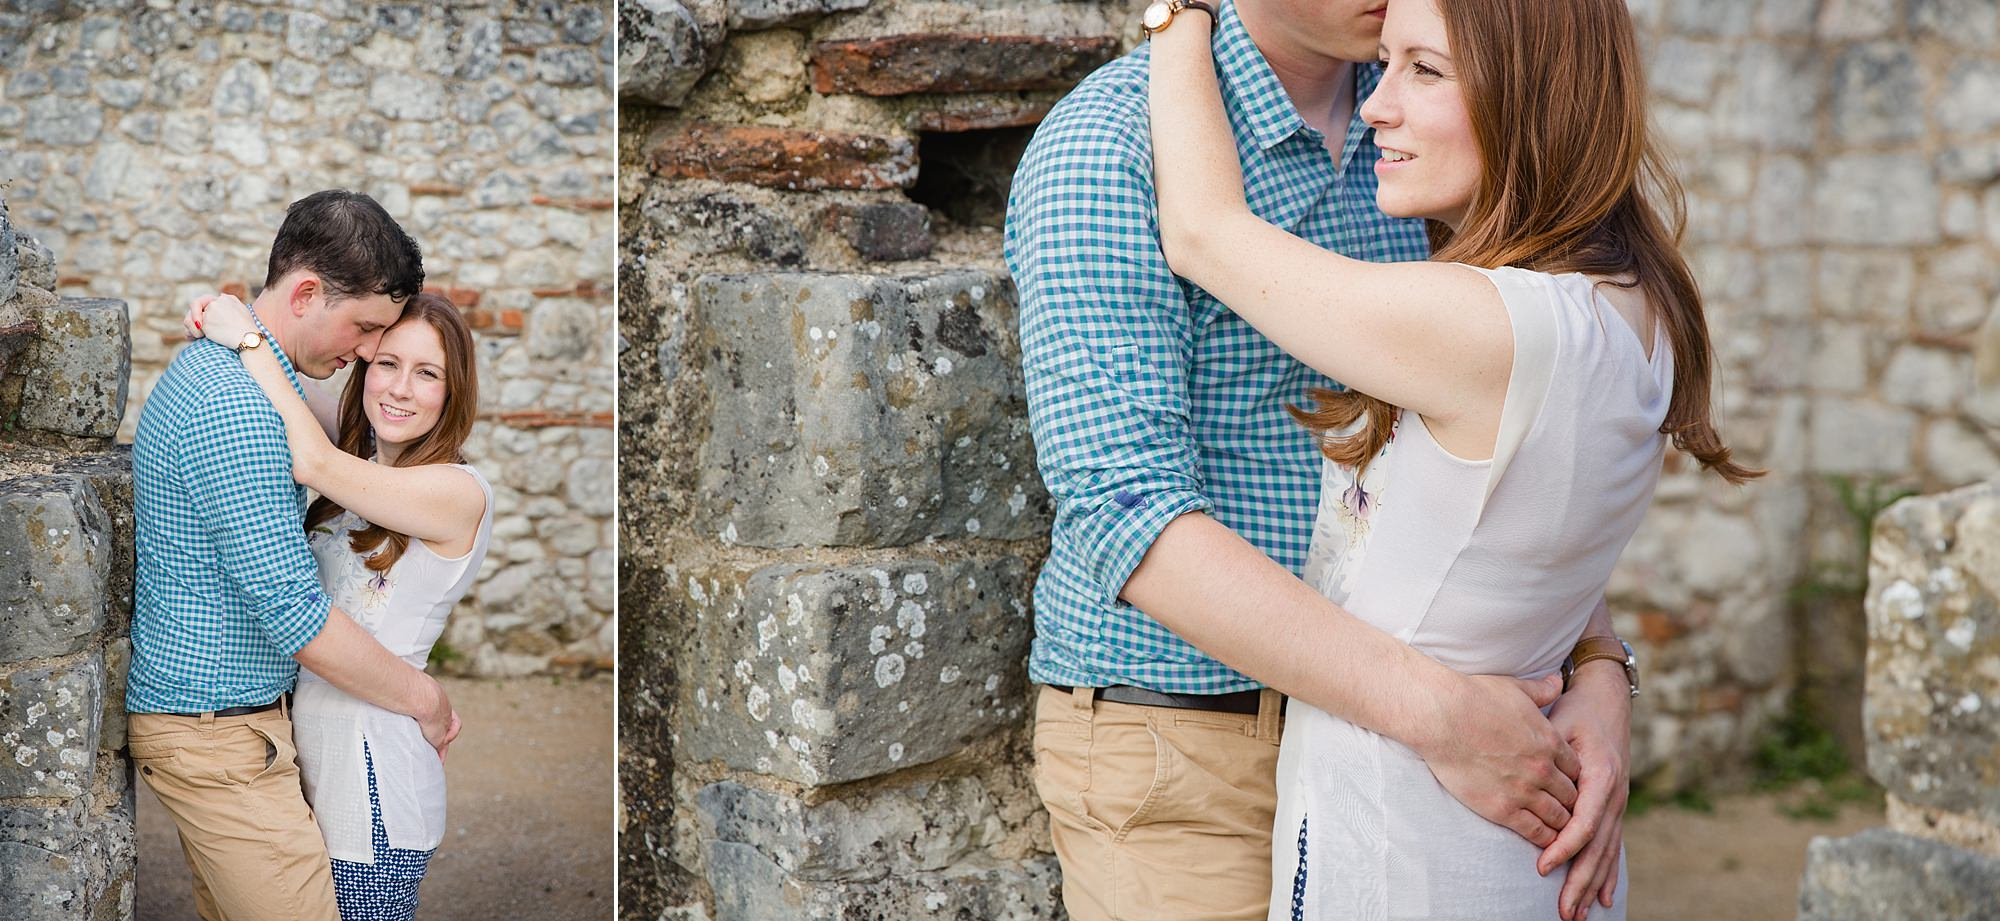 Farnham engagement photography at farnham castle